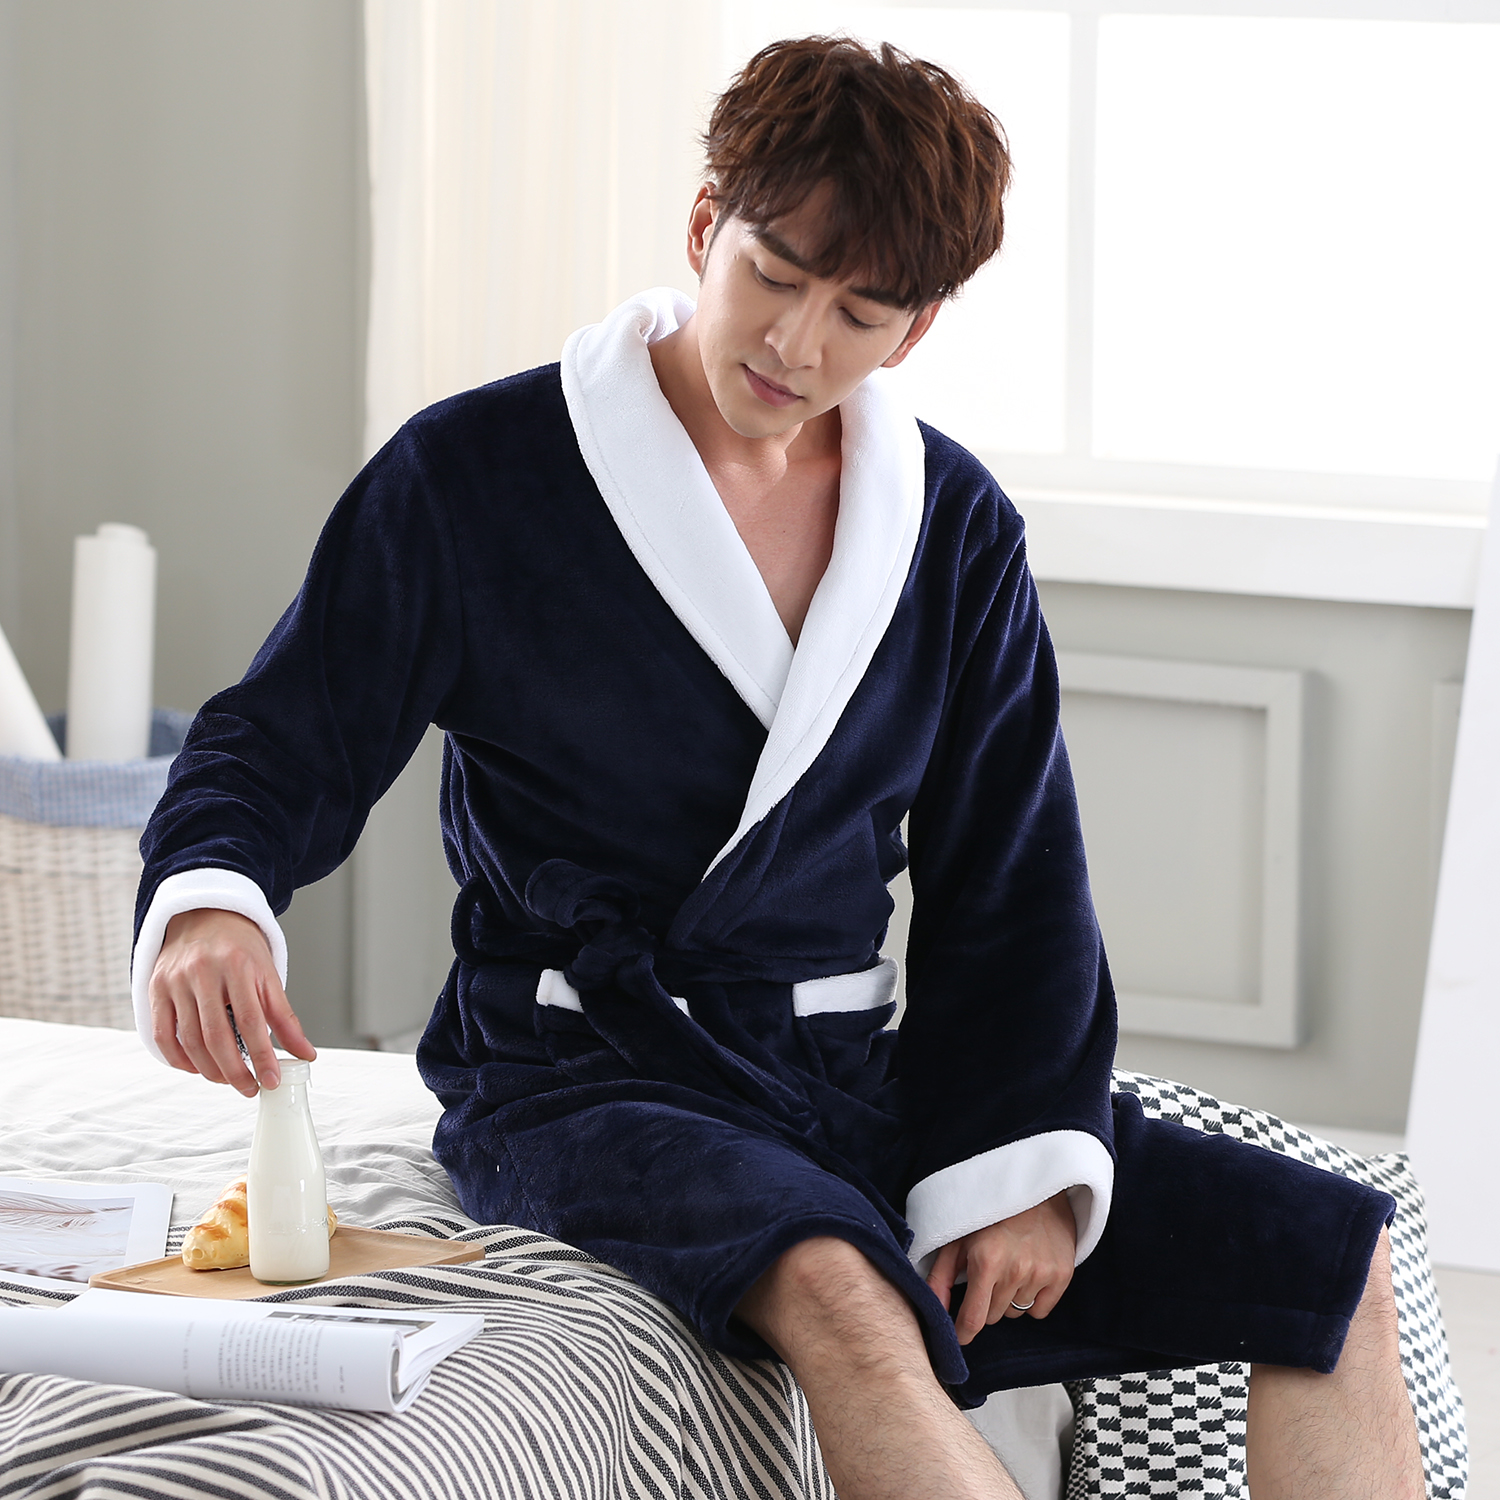 Winter Men Flannel Homewear Kimono Robe Gown Comfortable Keep Warm Sleepwear Nightwear Casual Soft Intimate Bathrobe Gown